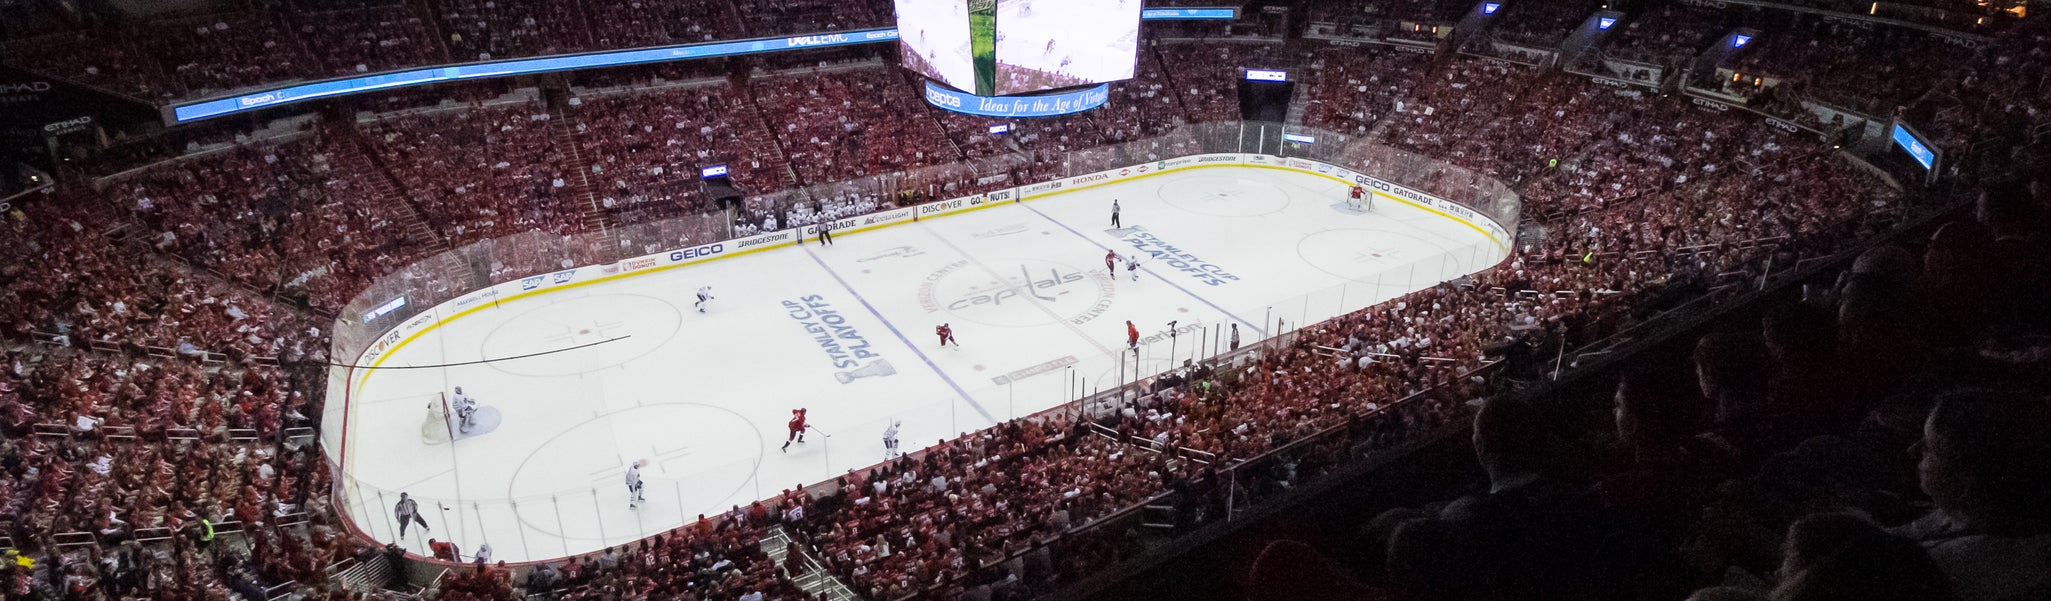 Seat view from Mezzanine Center 415 at Capital One Arena